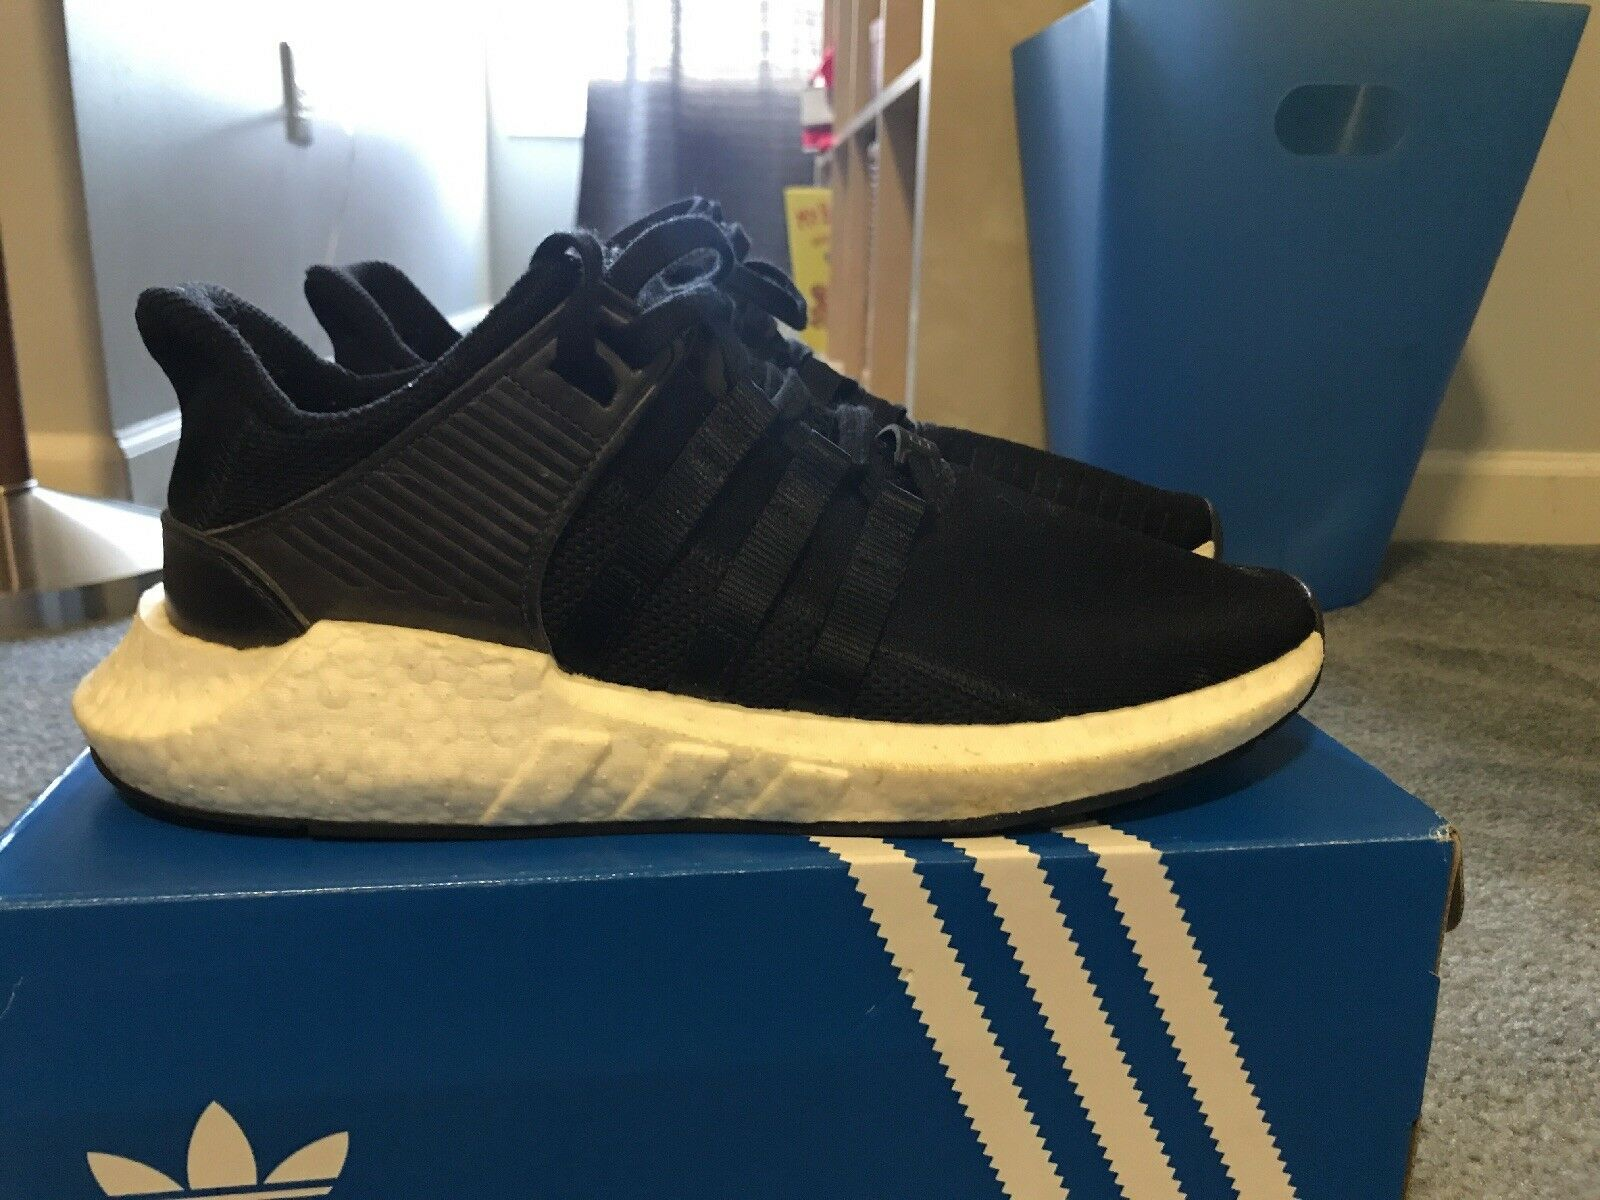 Adidas EQT 93/17 Milled Leather